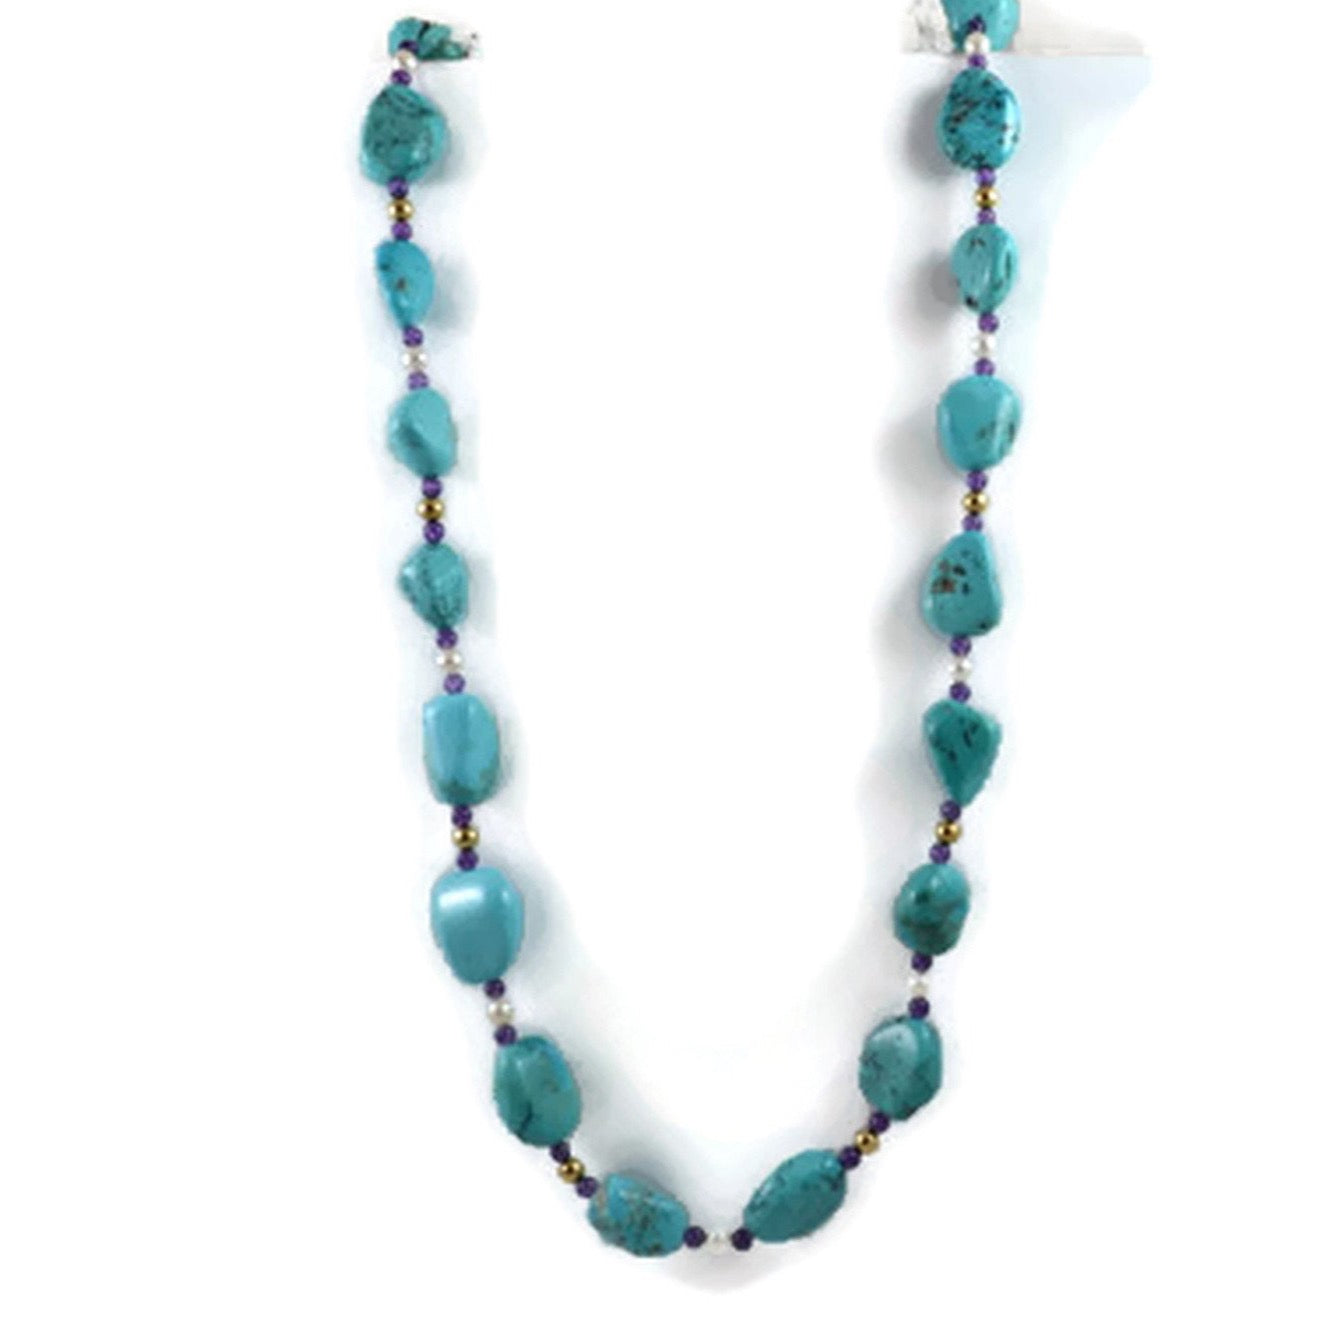 AF-JEWELERS-NECKLACE-STRAND-TURQUOISE-NUGGET-AMETHYST-PEARLS-YELLOW-GOLD